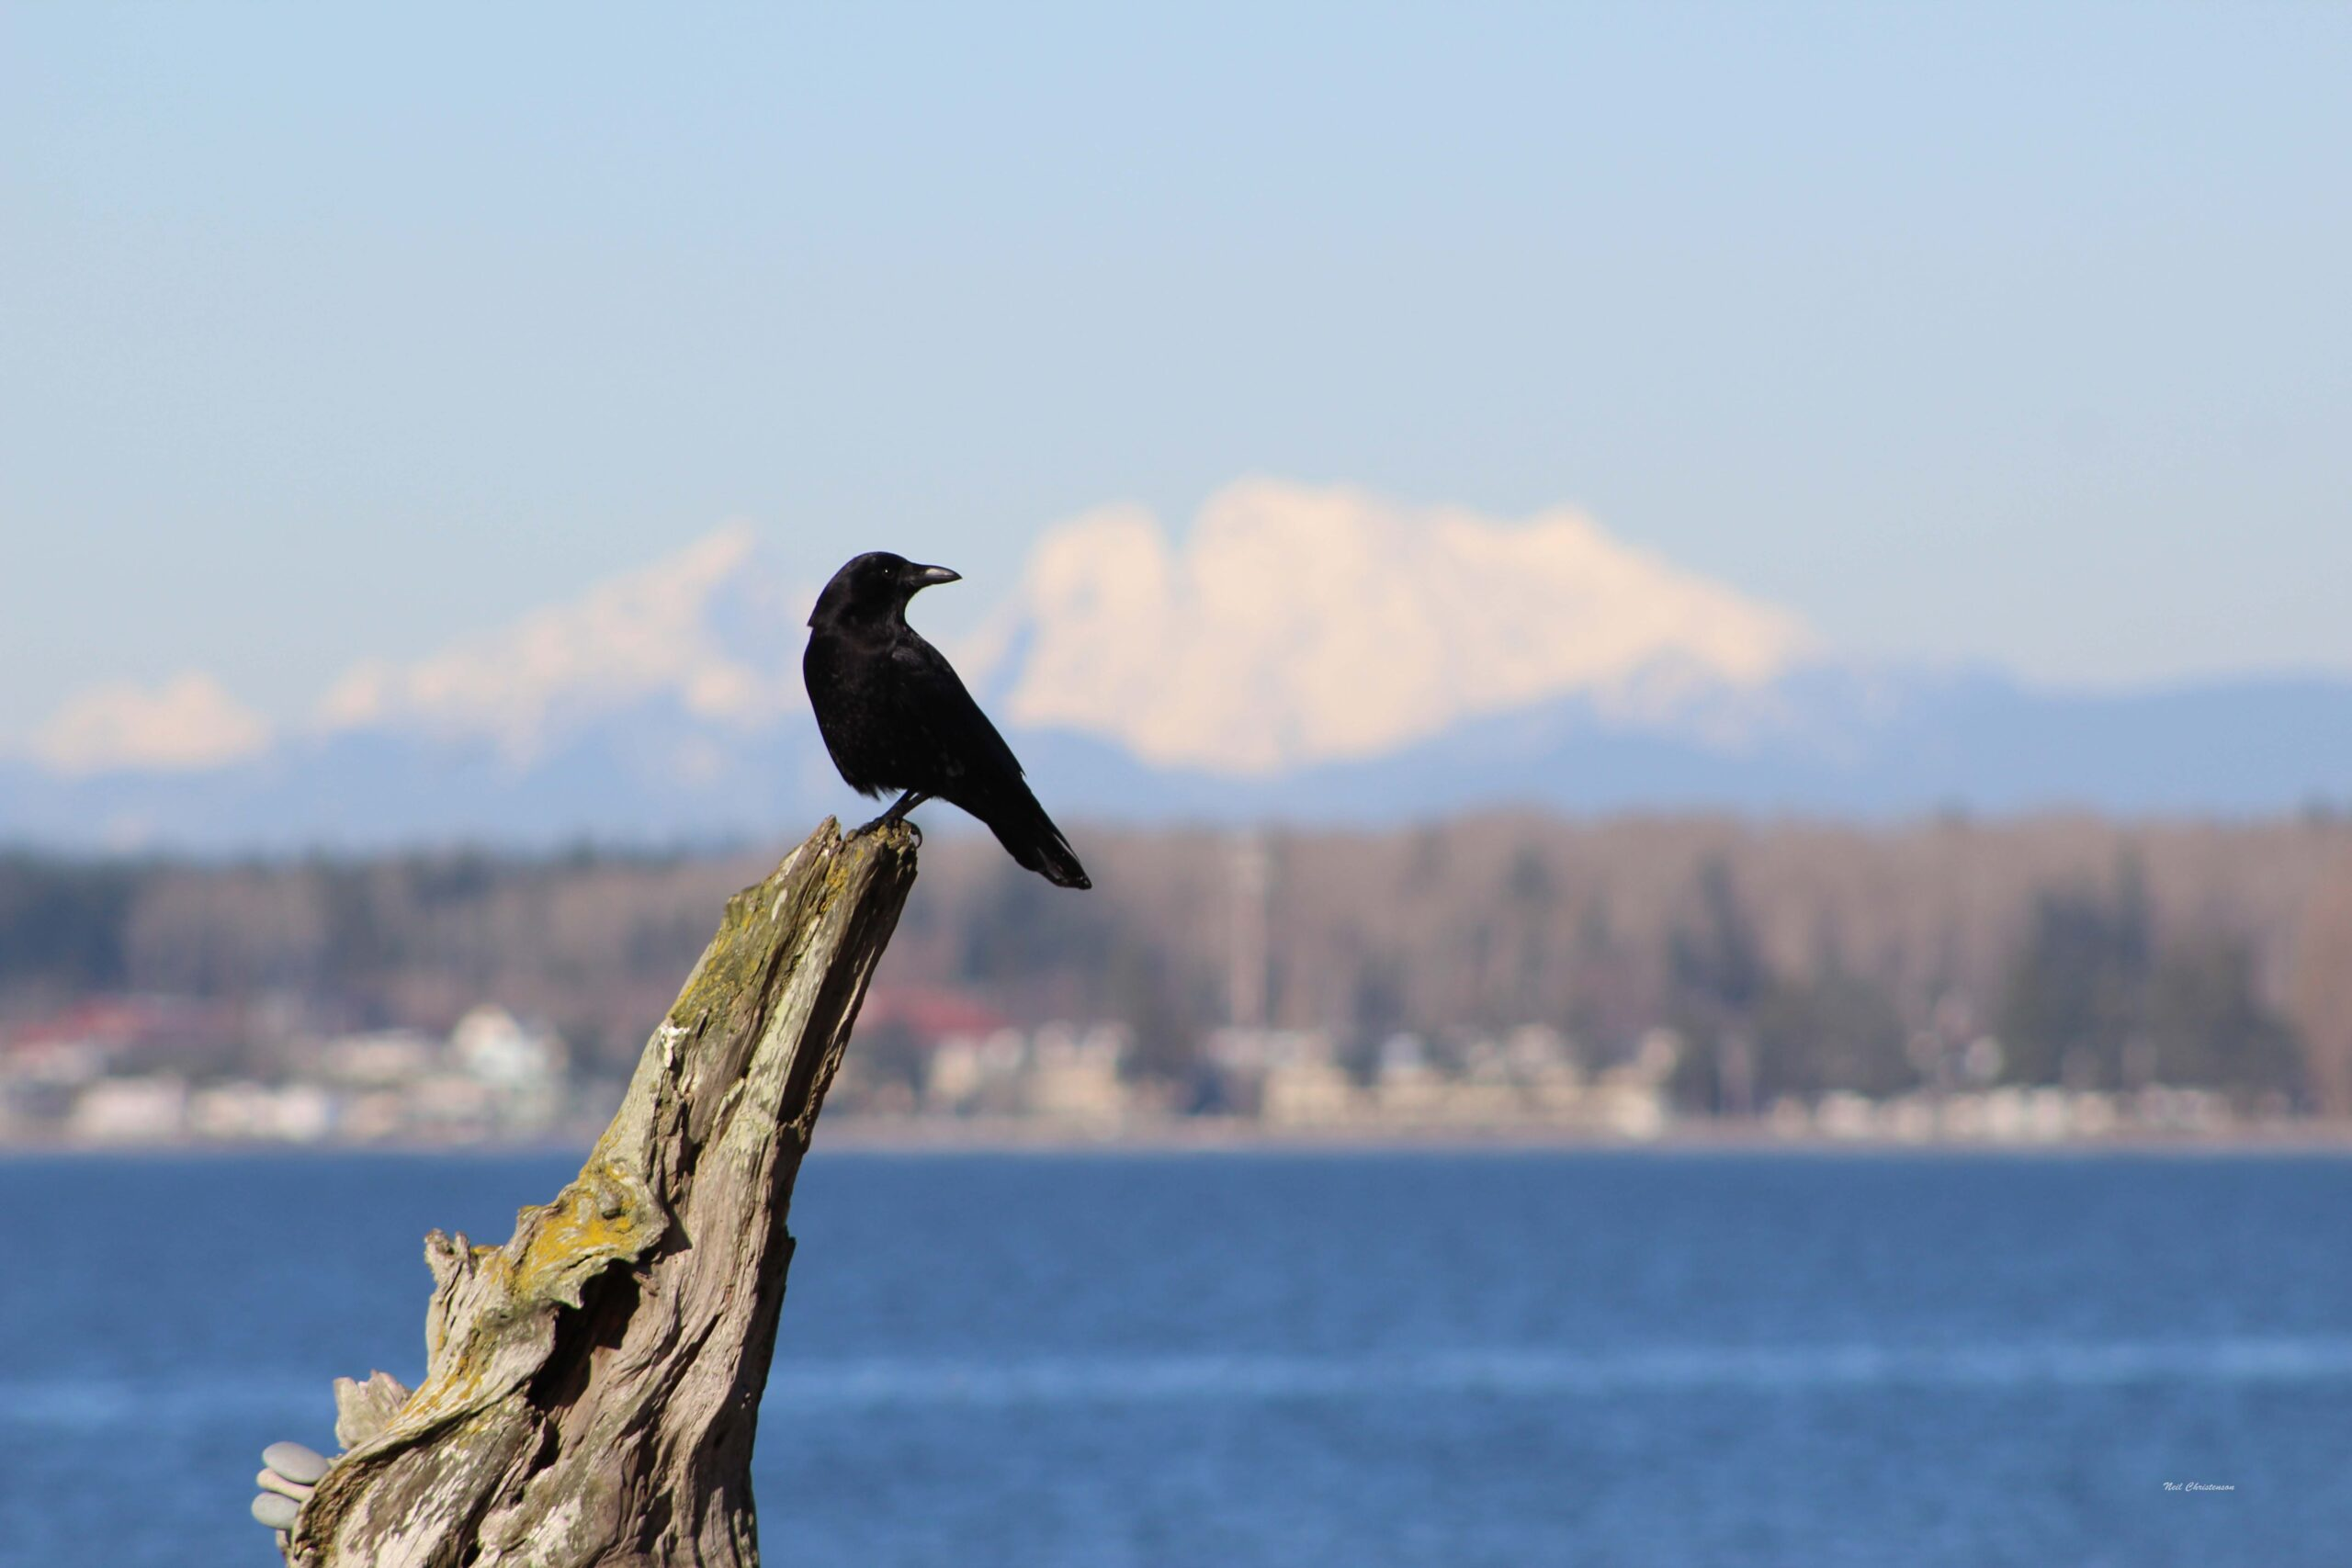 A crow sitting on driftwood with Canadian cascade mountains in the background.